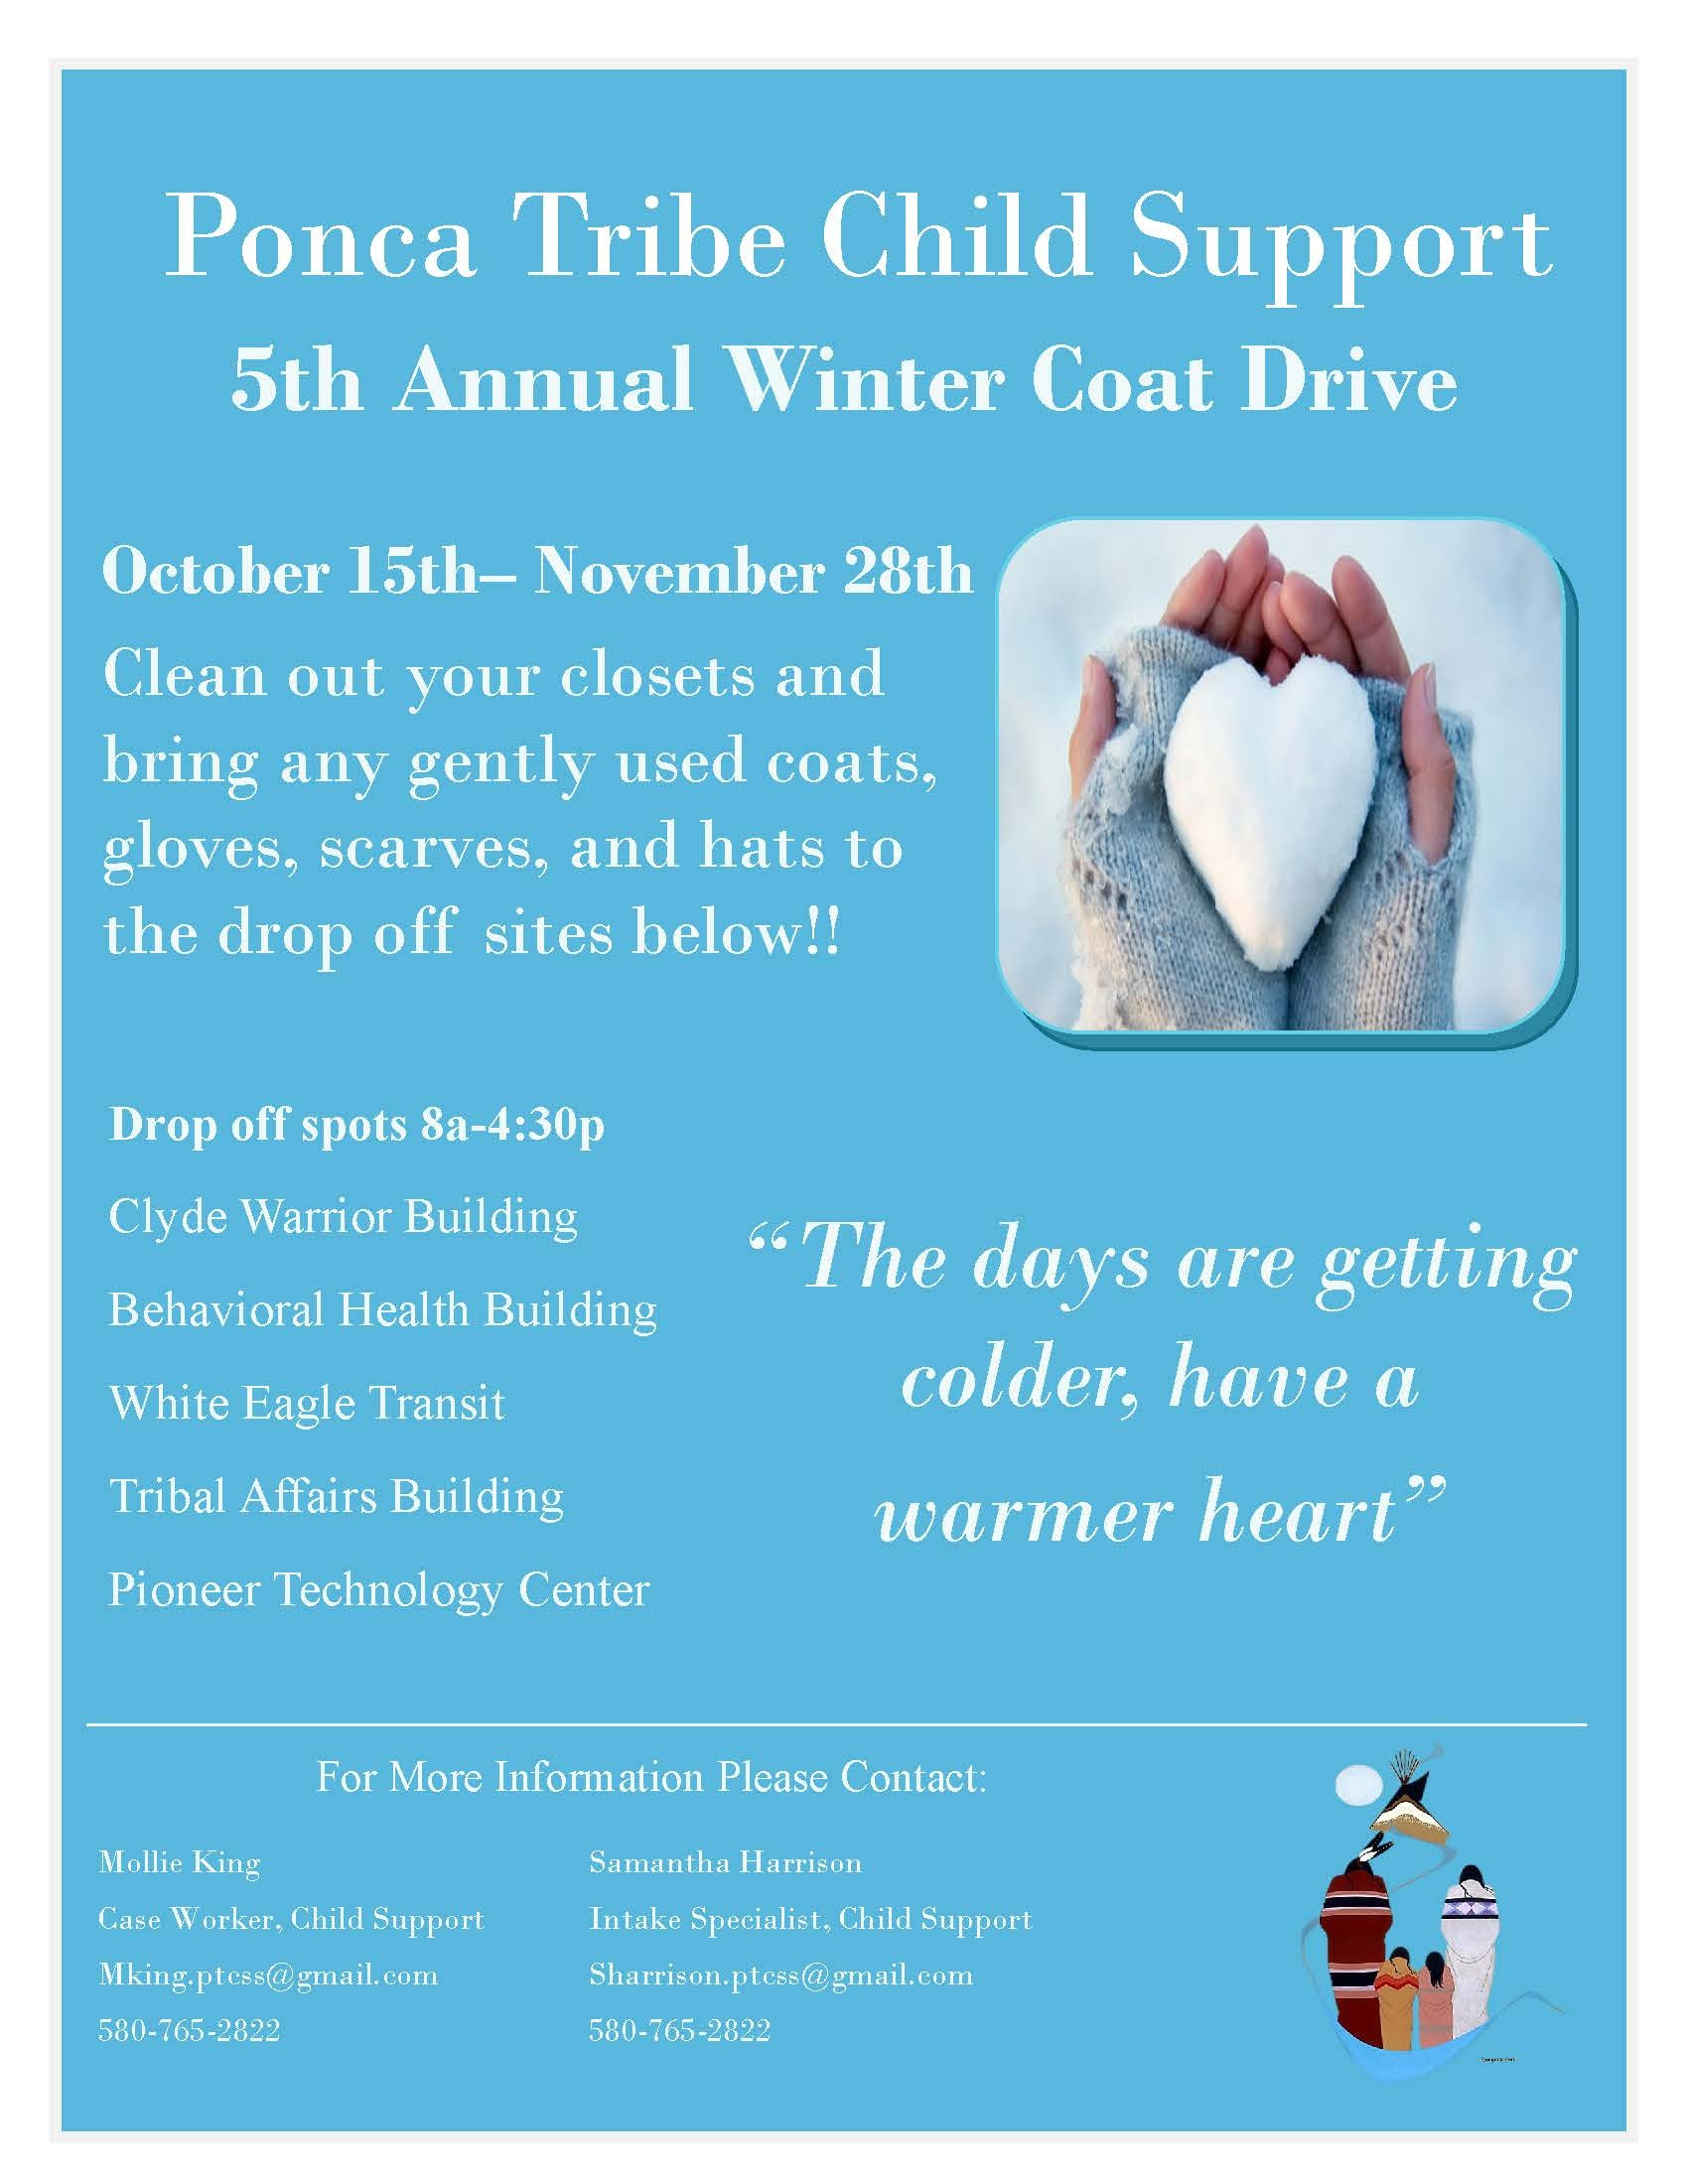 Ponca Tribe Child Support 5th Annual Winter Coat Drive